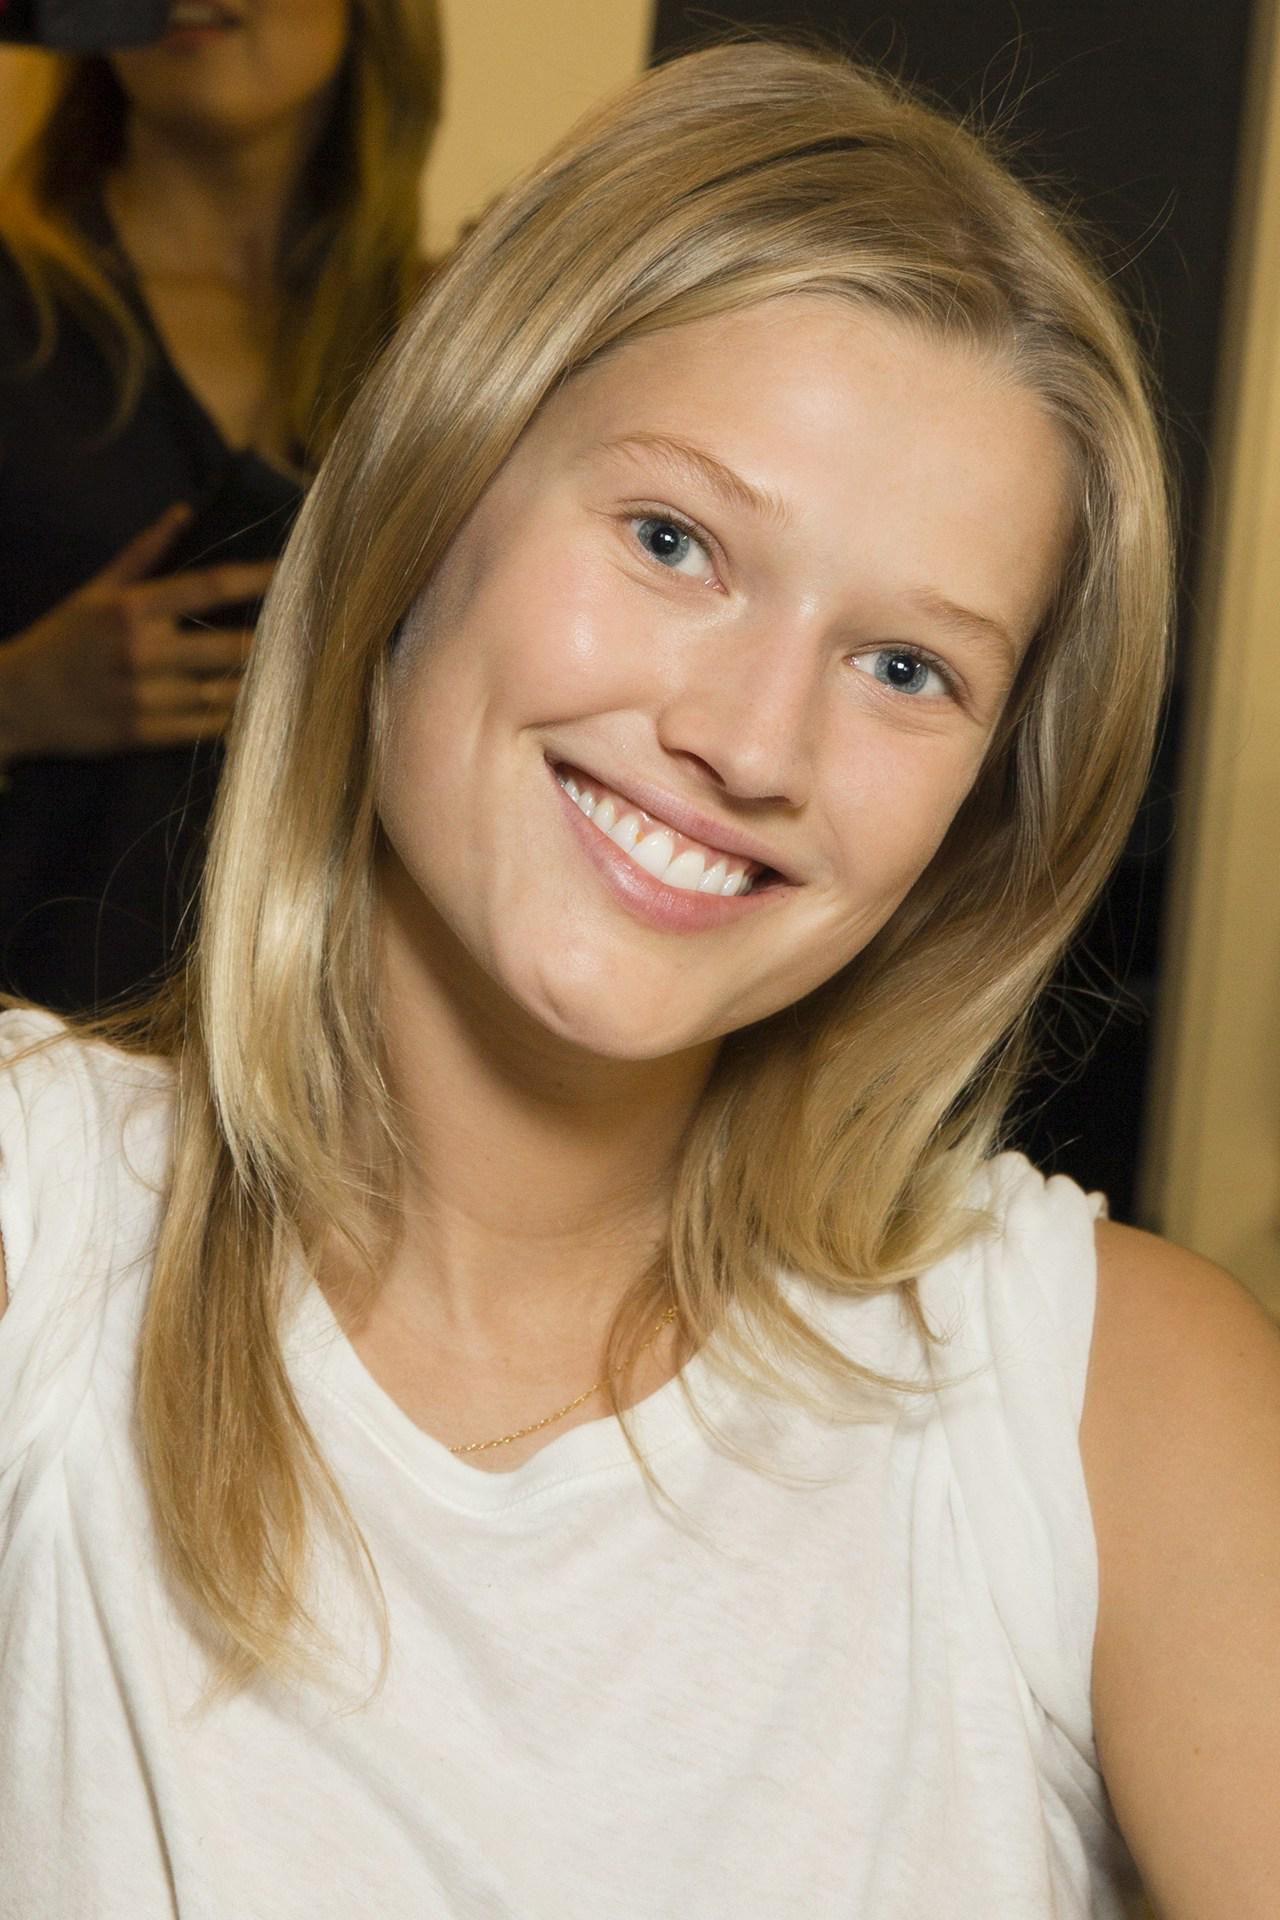 There's much more to @ToniGarrn than the gossip columns know: http://t.co/RM4T4tGtyG http://t.co/ZNhWi7M0vQ